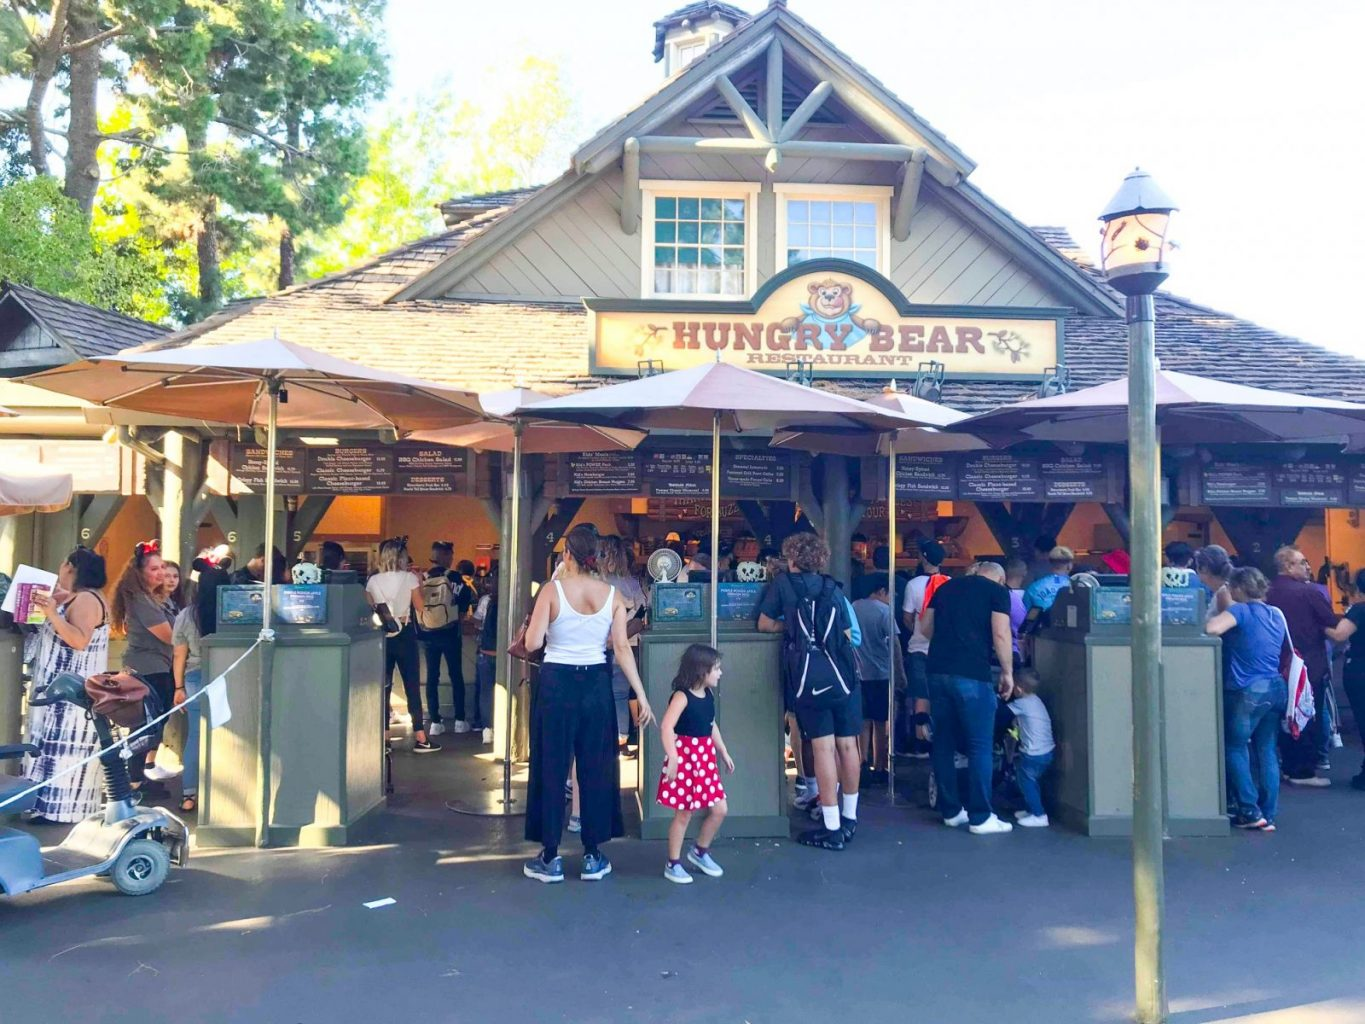 The counter to get good food in Disneyland at Hungry Bear Restaurant